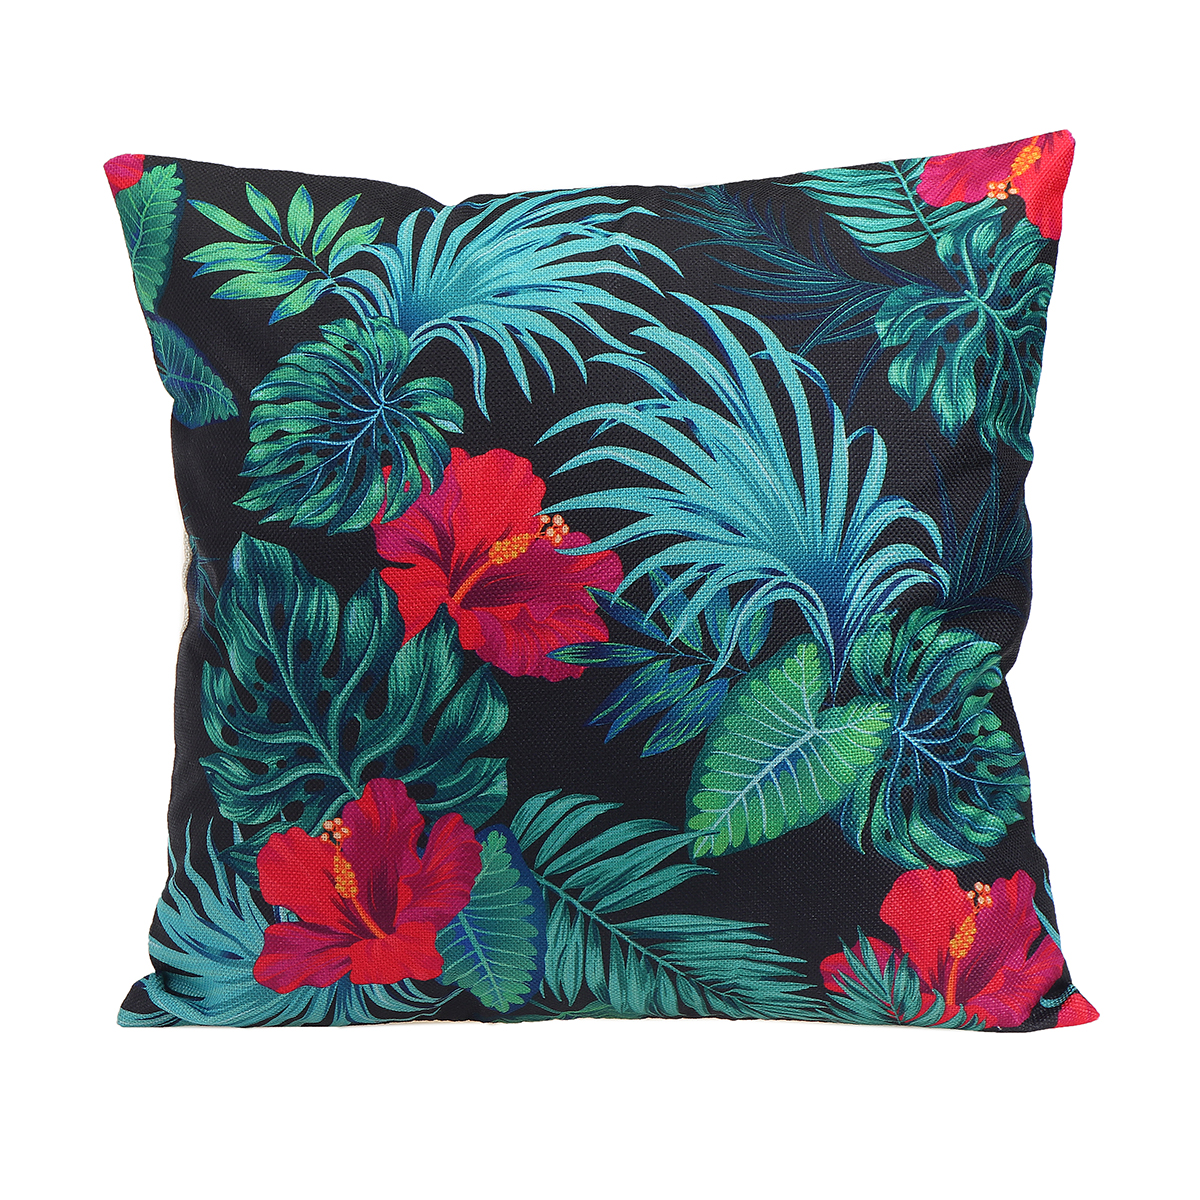 Decorative Pillows & Custom Pillow Covers for Home   Walmart